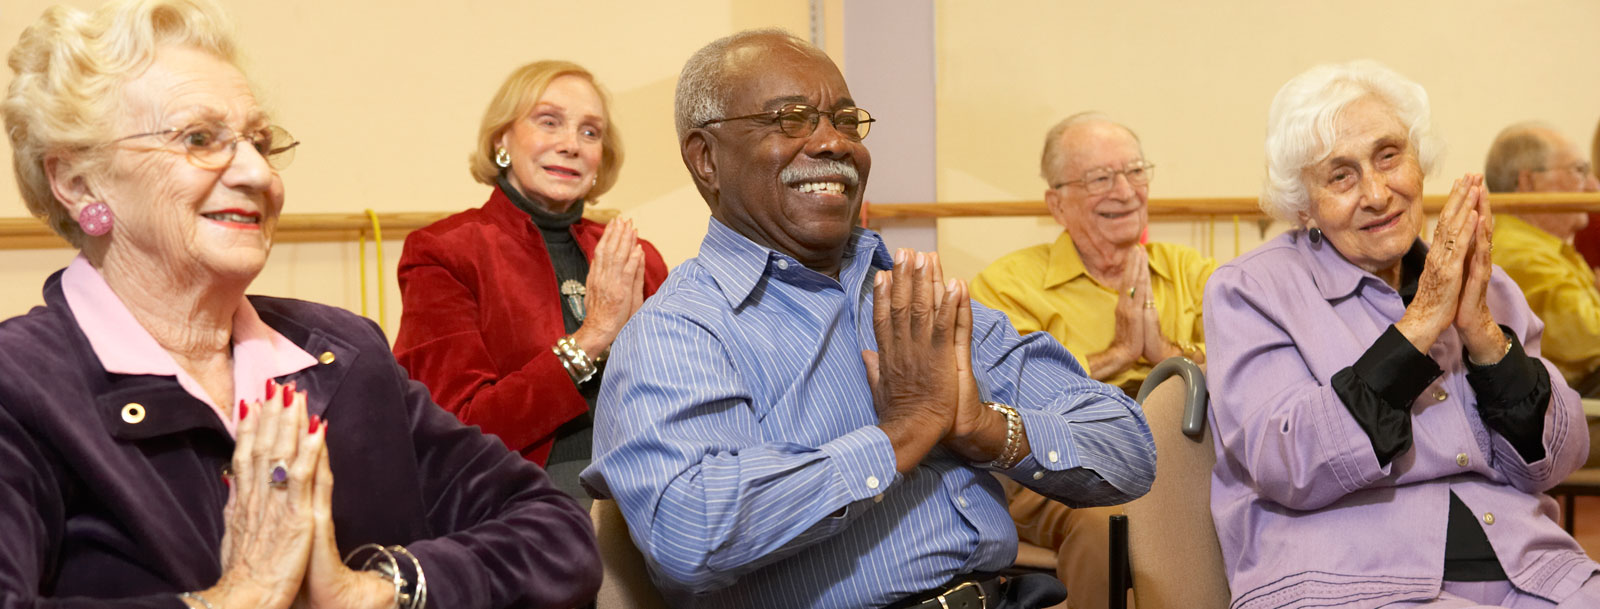 Health and wellness programs at the senior facility